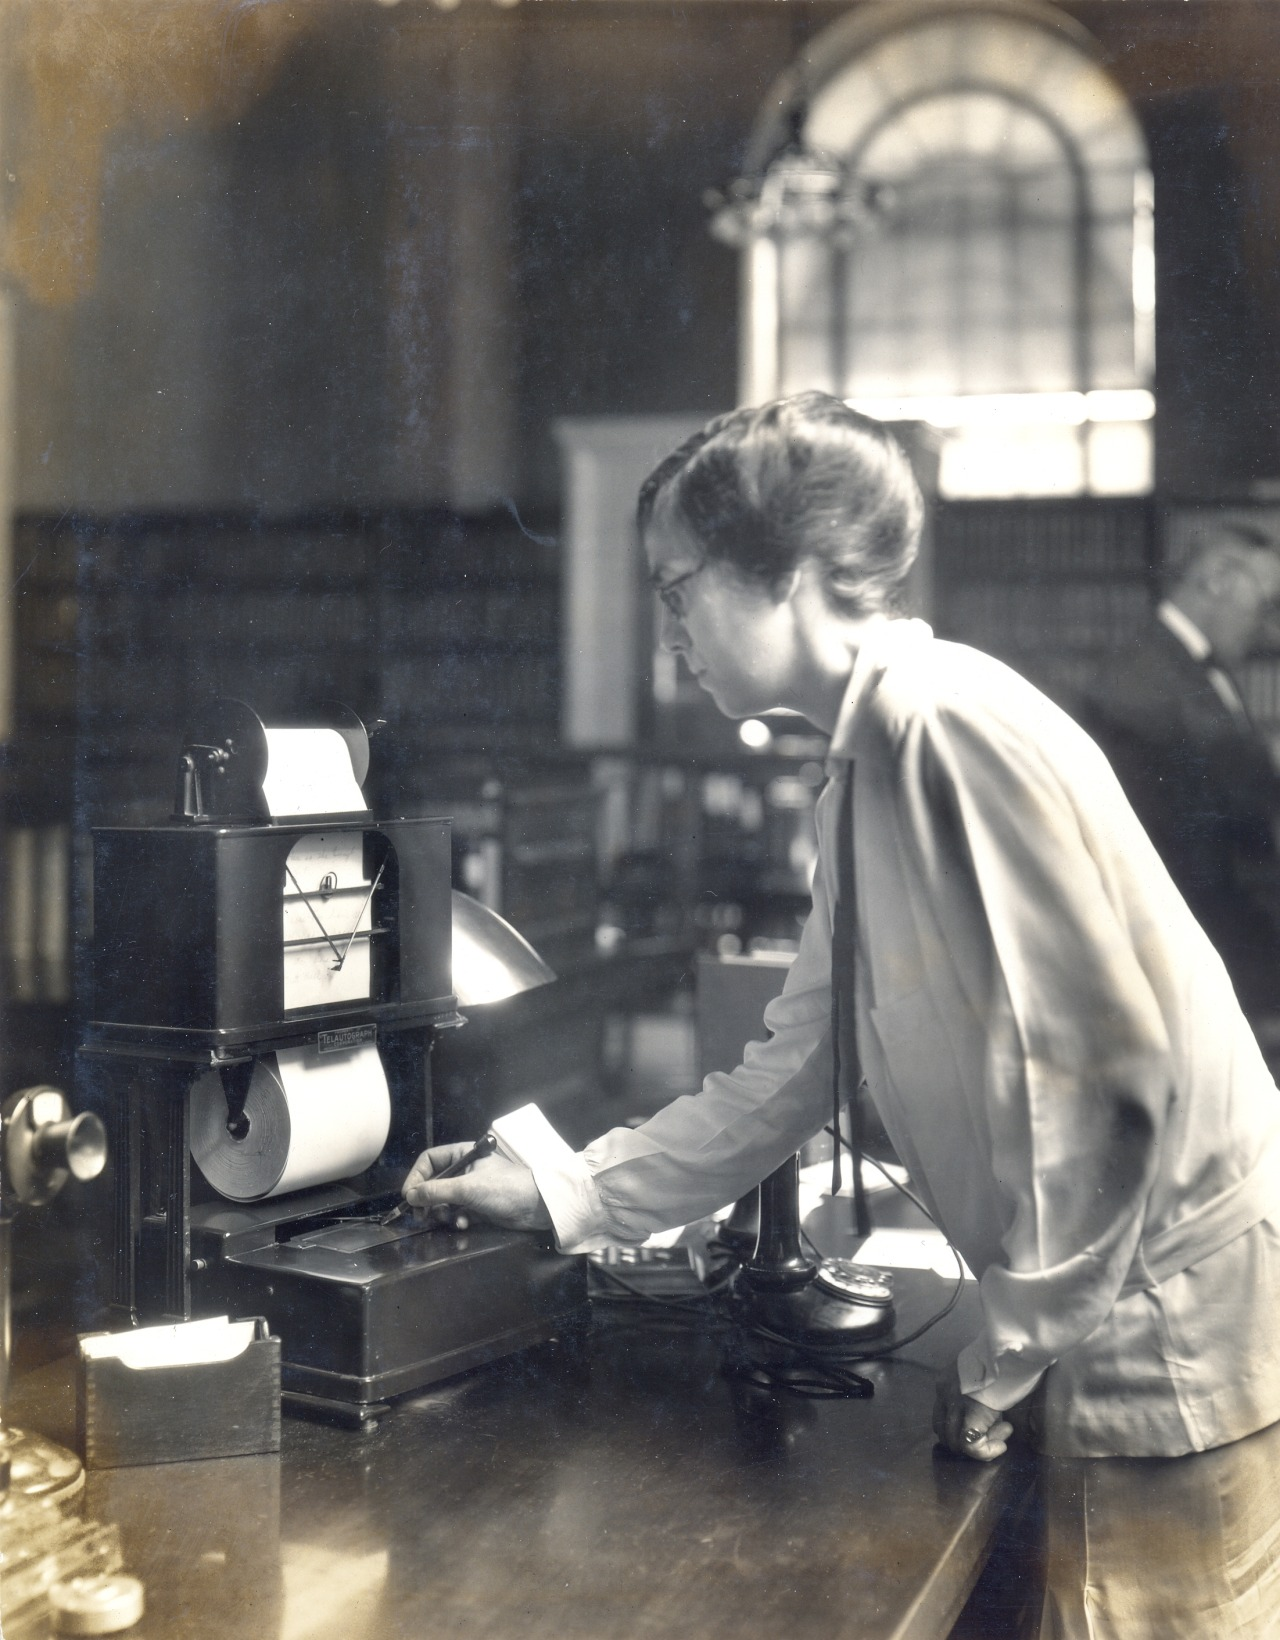 A Library employee using the Telautograph machine, an early precursor to the fax machine, ca. 1925.